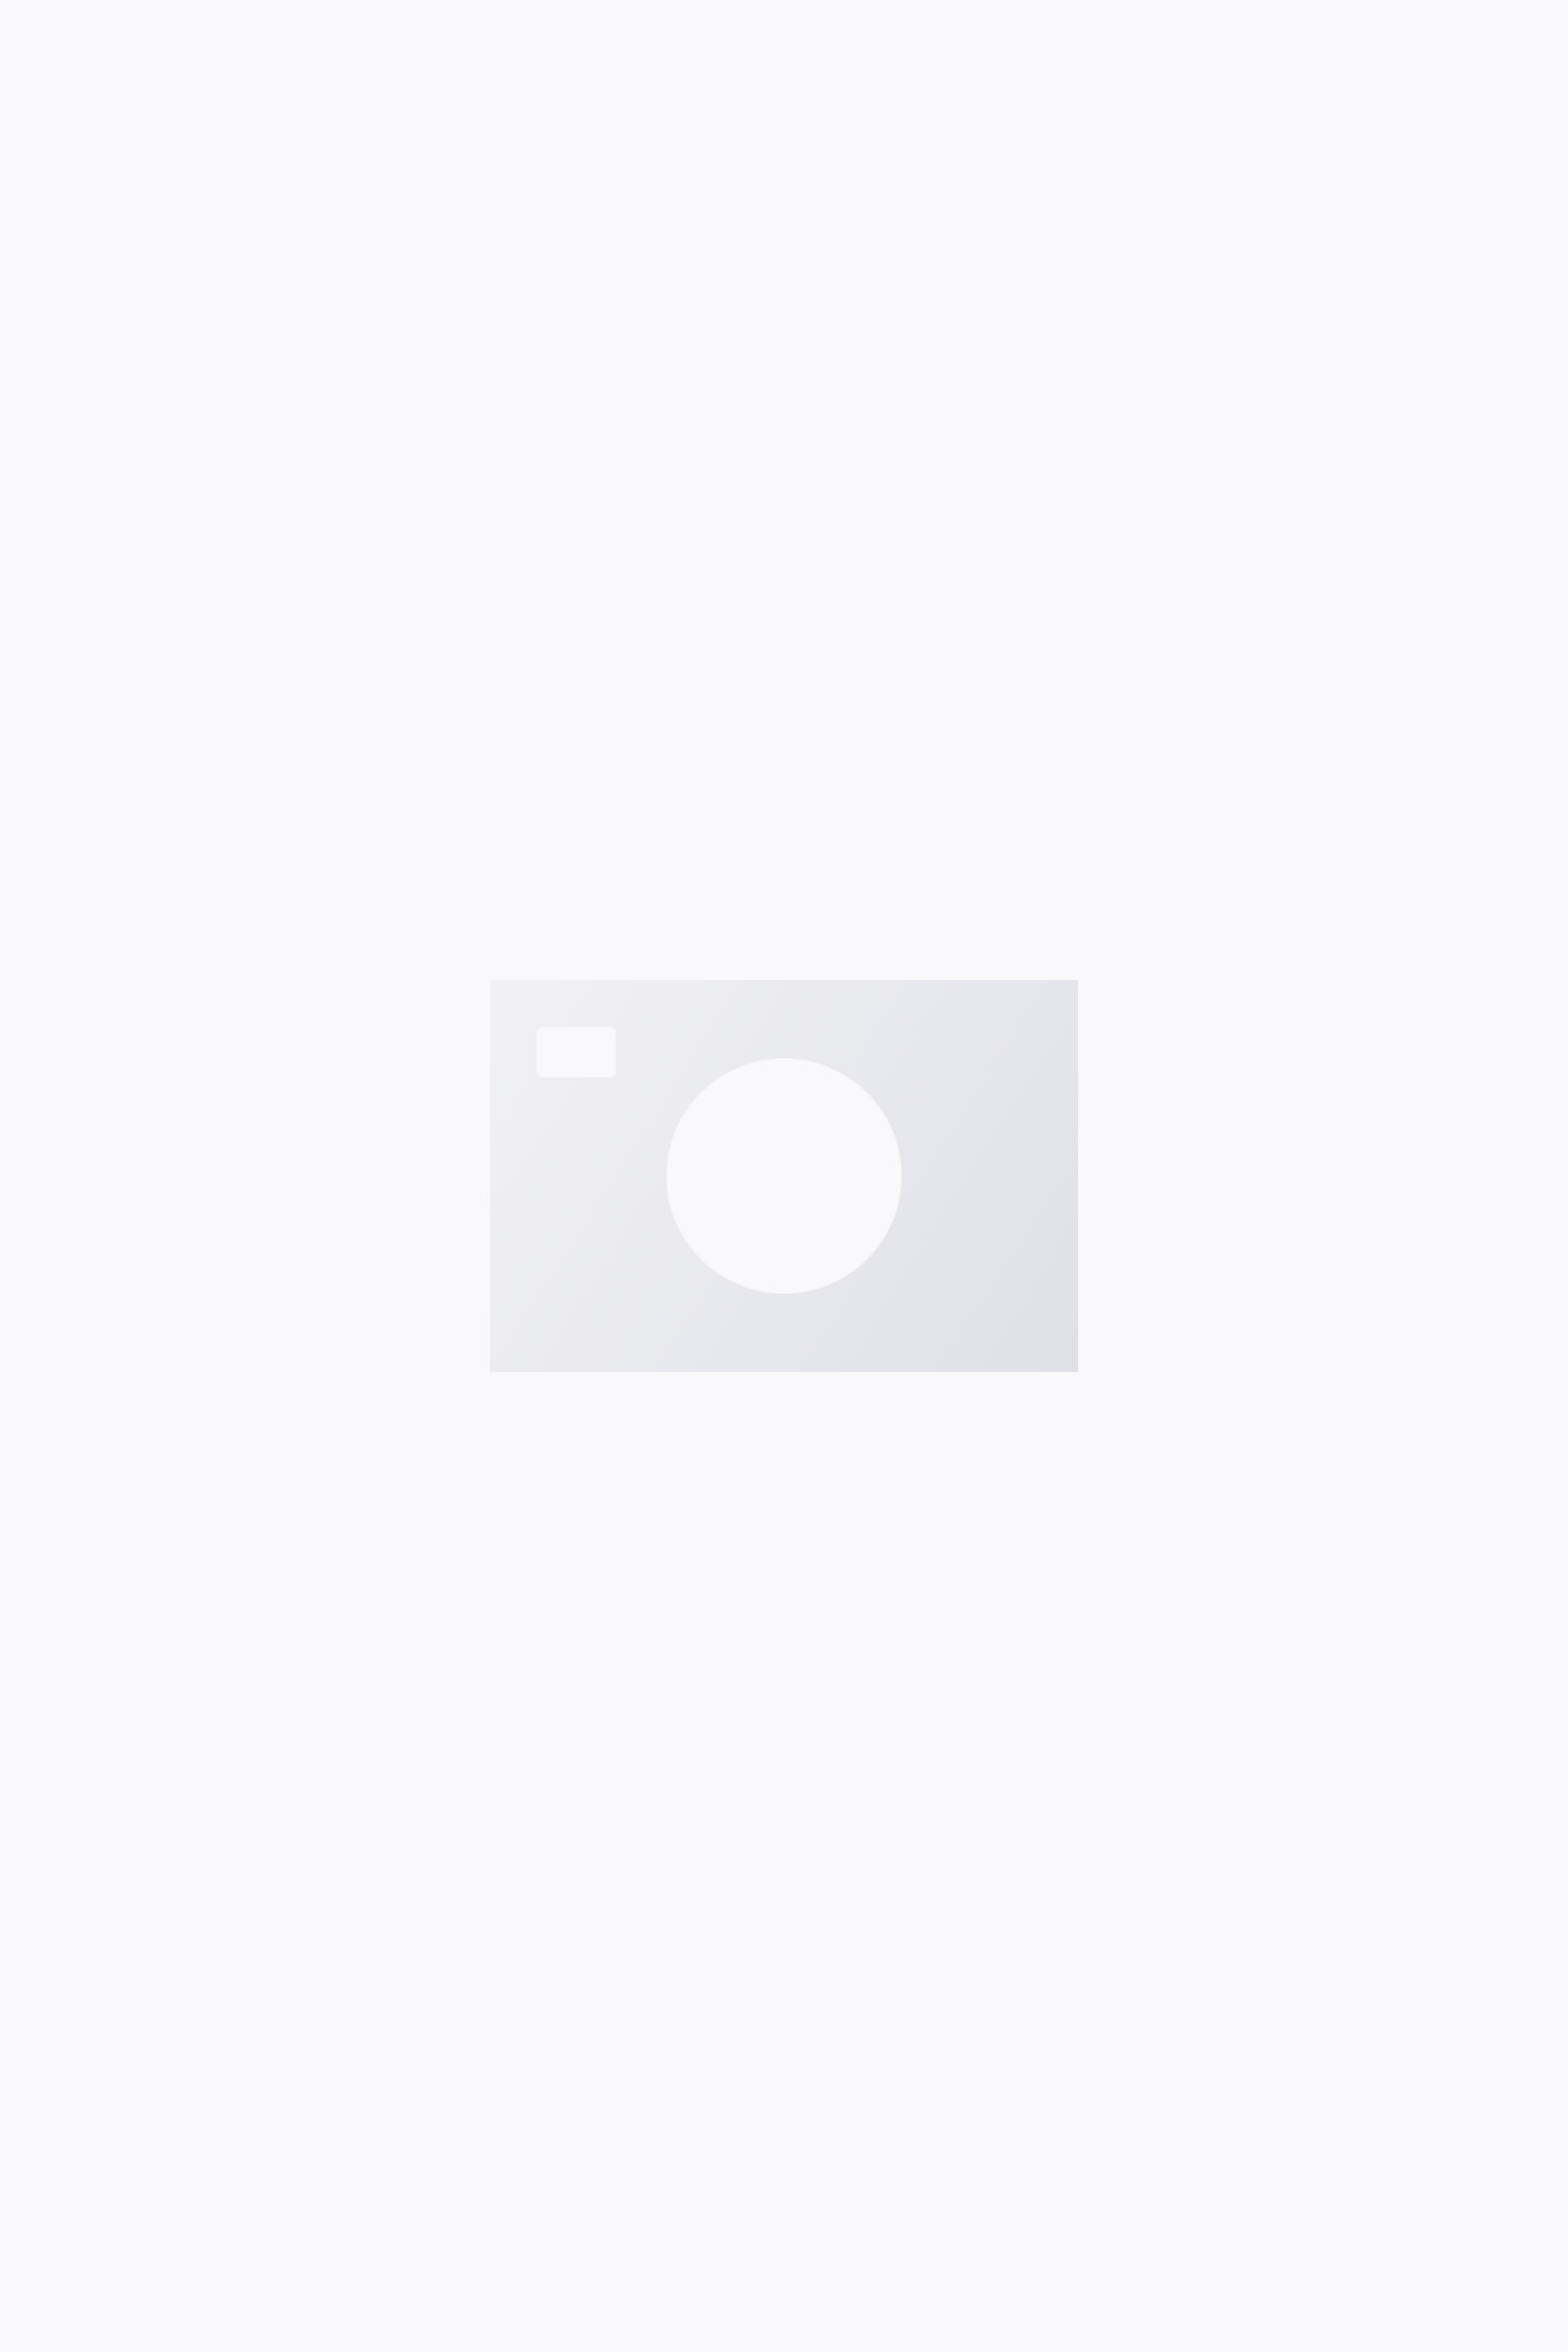 COS DRAWSTRING TROUSERS,white